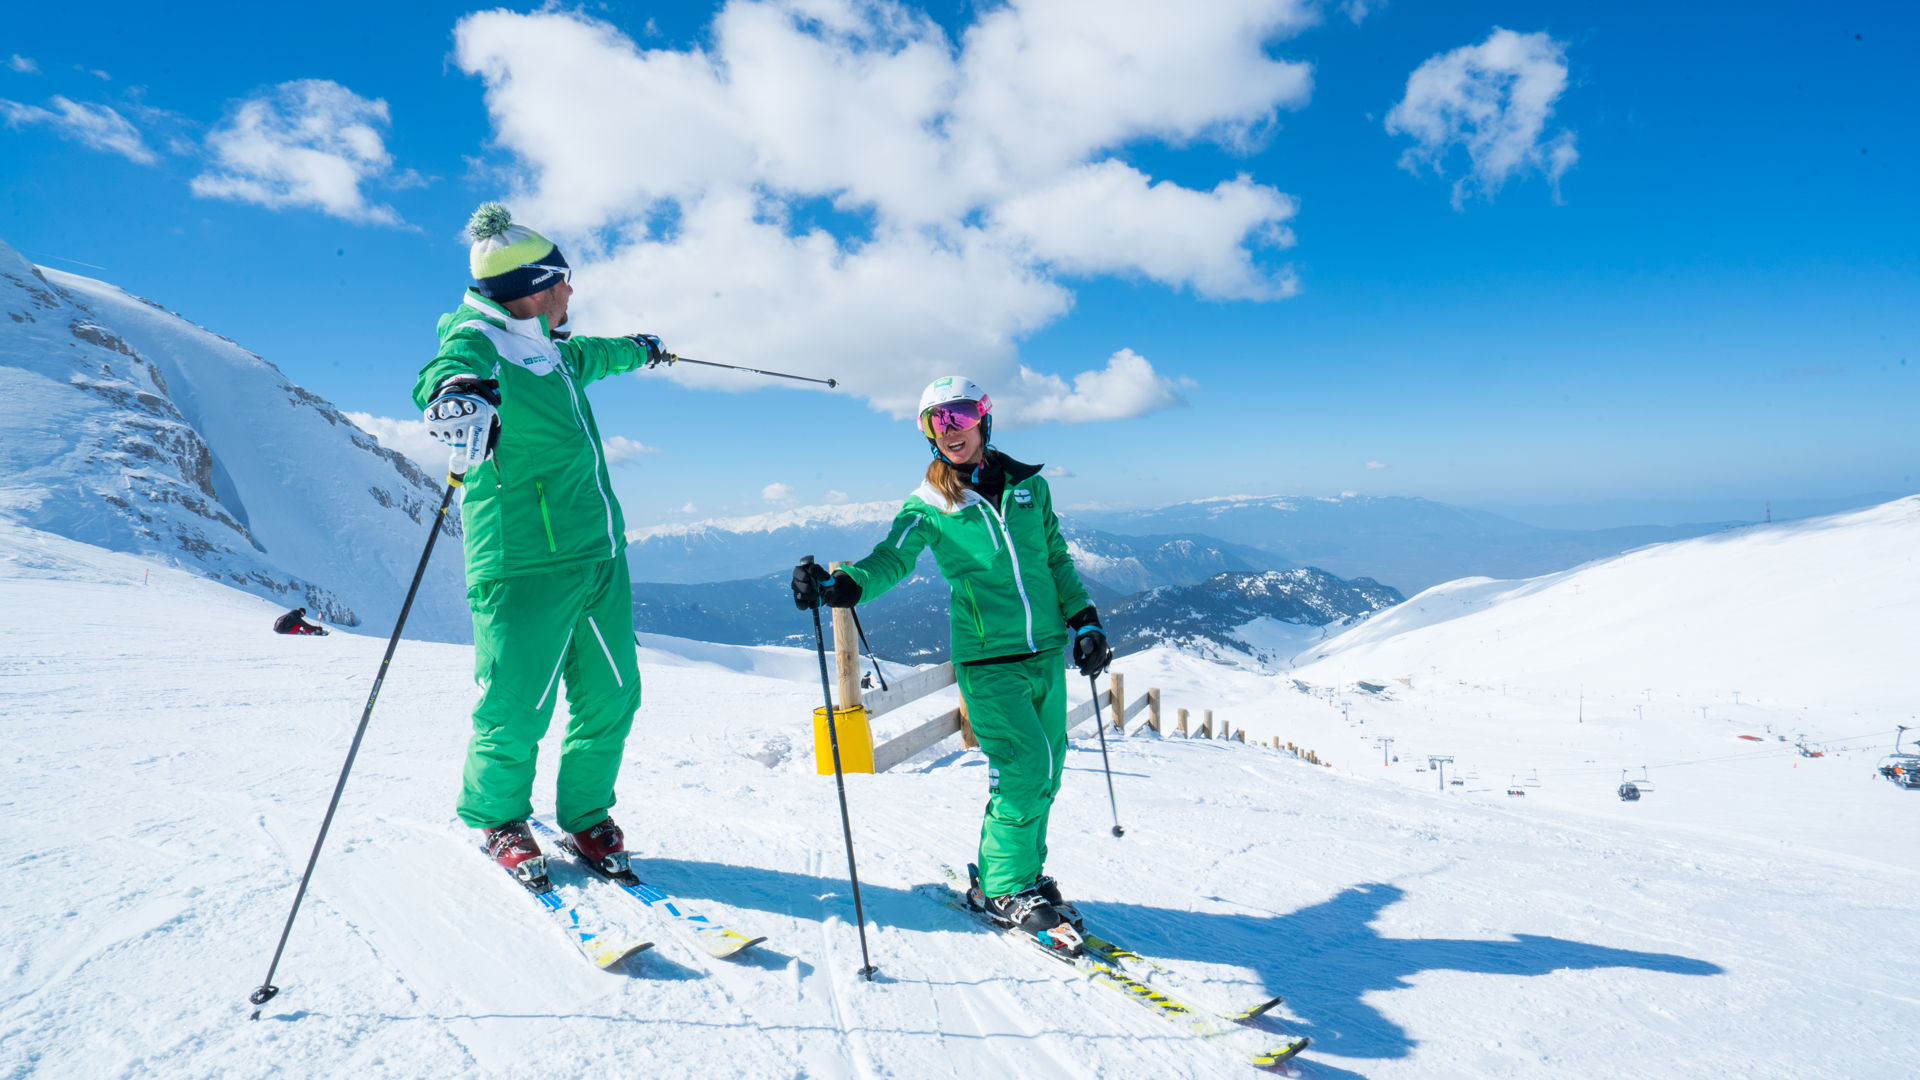 Parnassos Ski Resort: Skiing in Greece with sea view